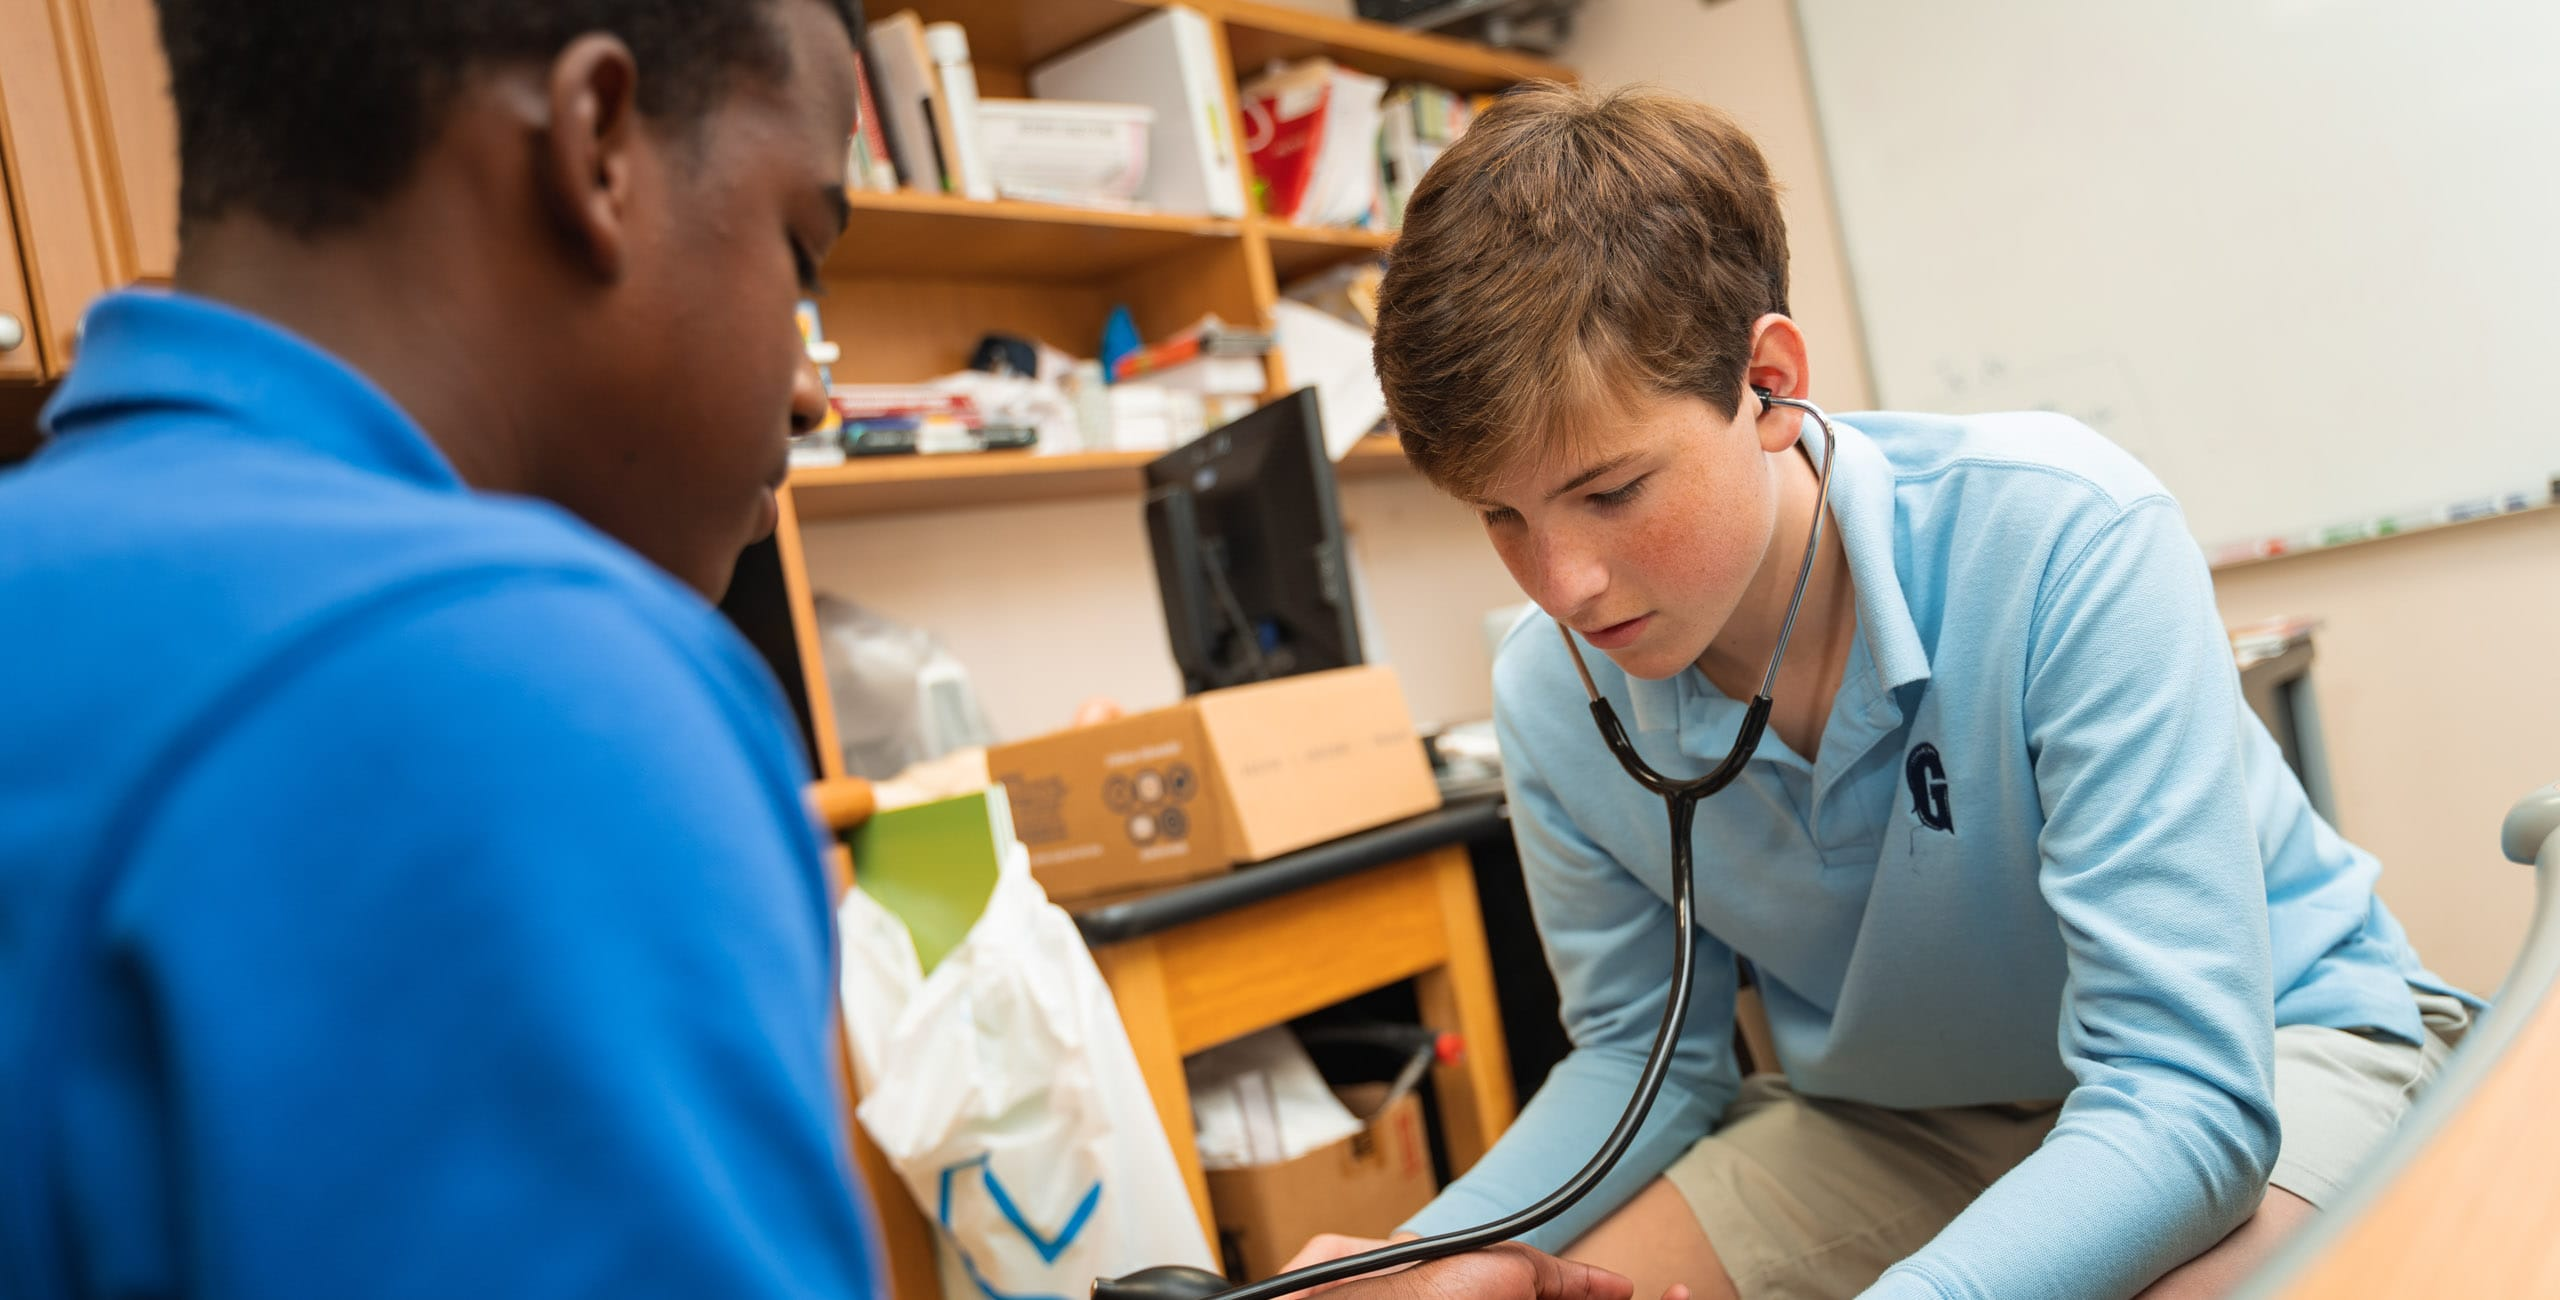 Student checking heartbeat of another student with a stethoscope